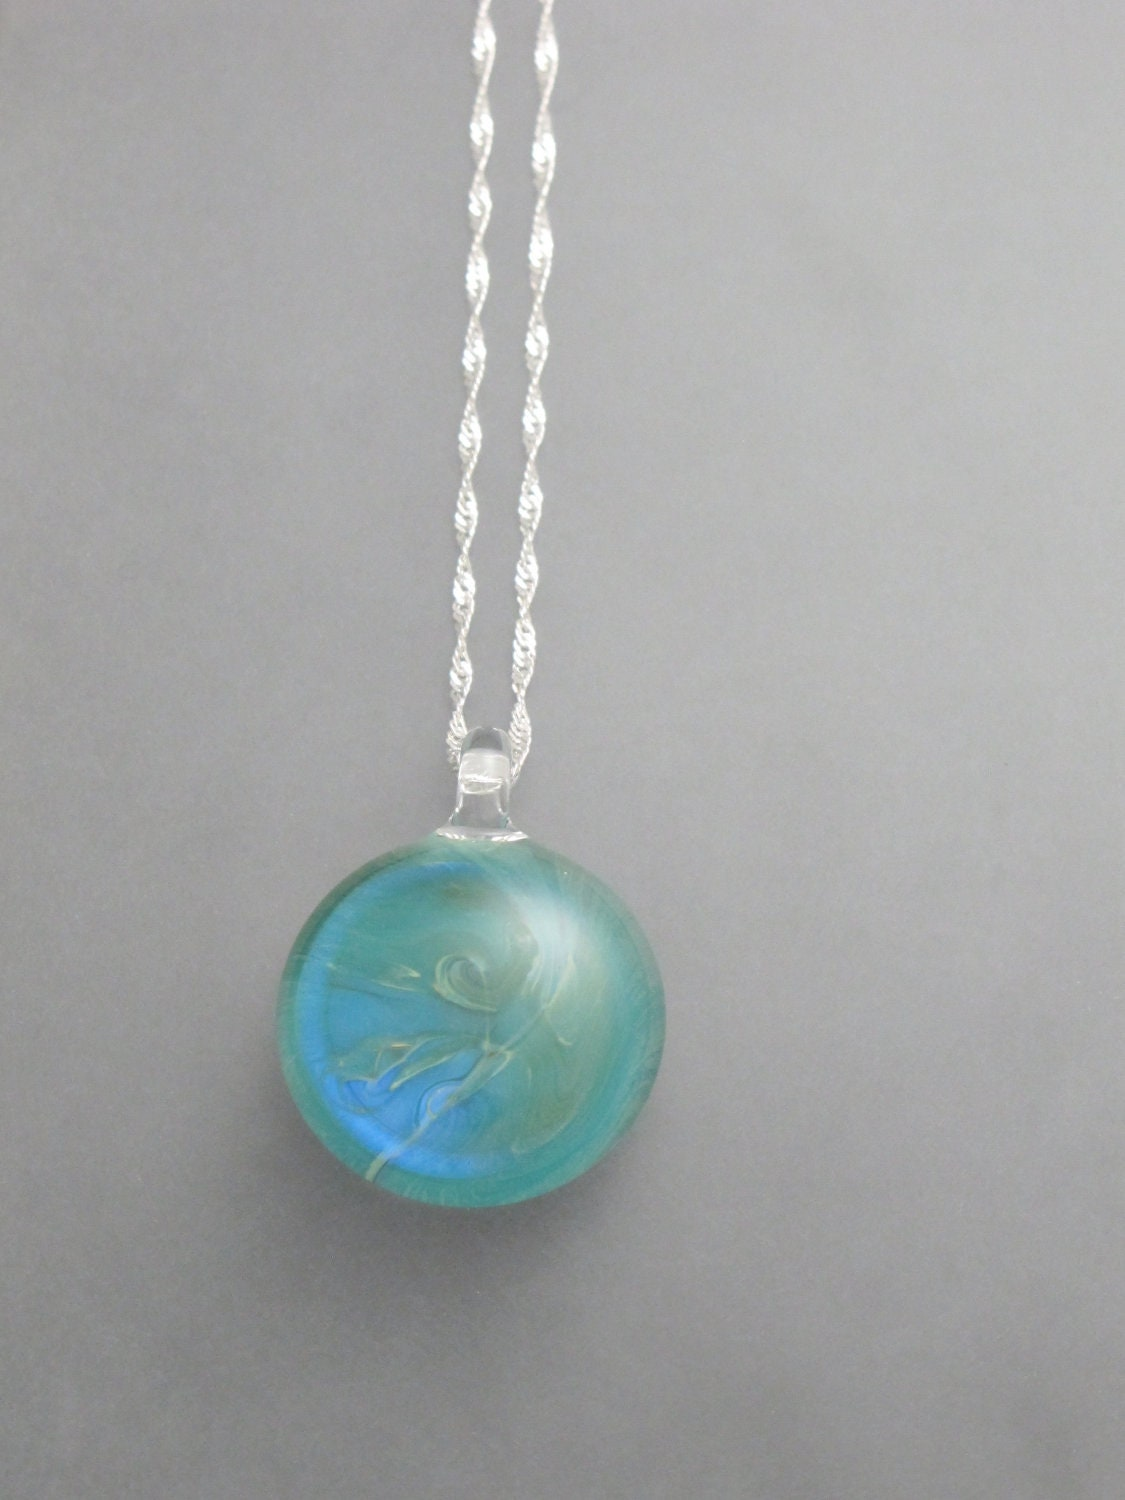 Braden Hammond Glass - Stormy Necklace in Silver Aqua